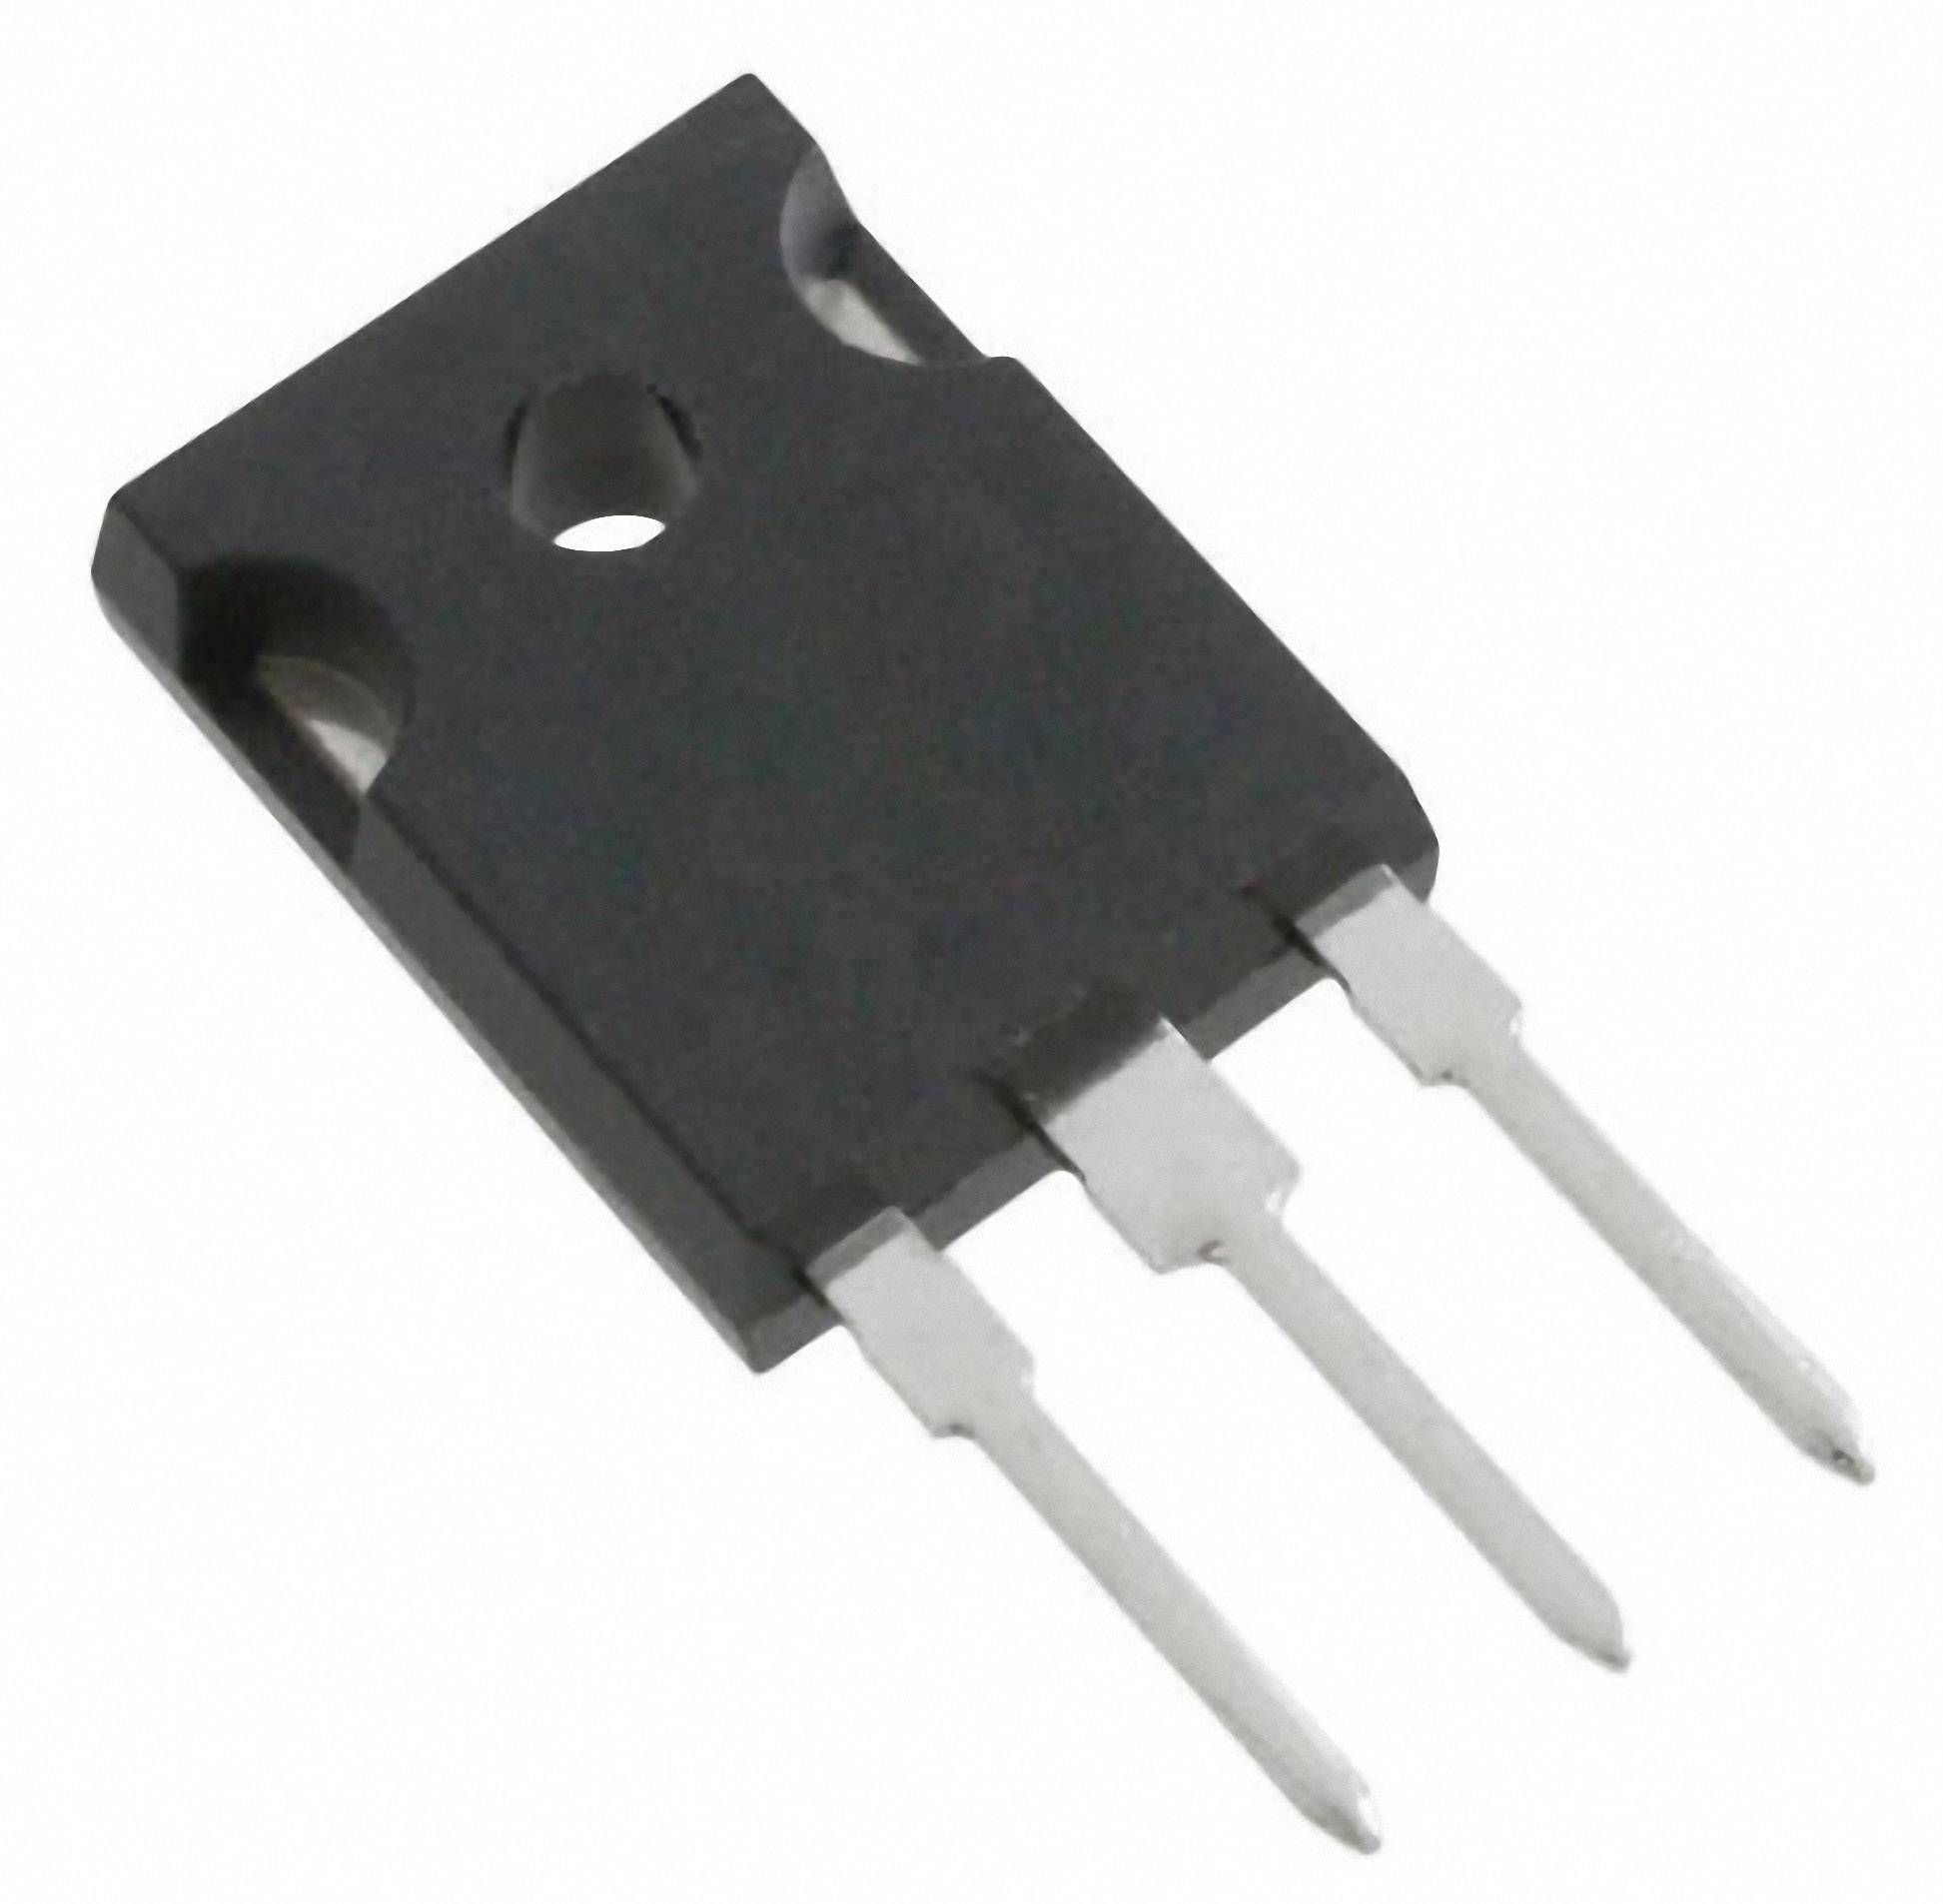 Tranzistor IGBT ON Semiconductor HGTG20N60B3D, TO-247 , 600 V, samostatný, standardní